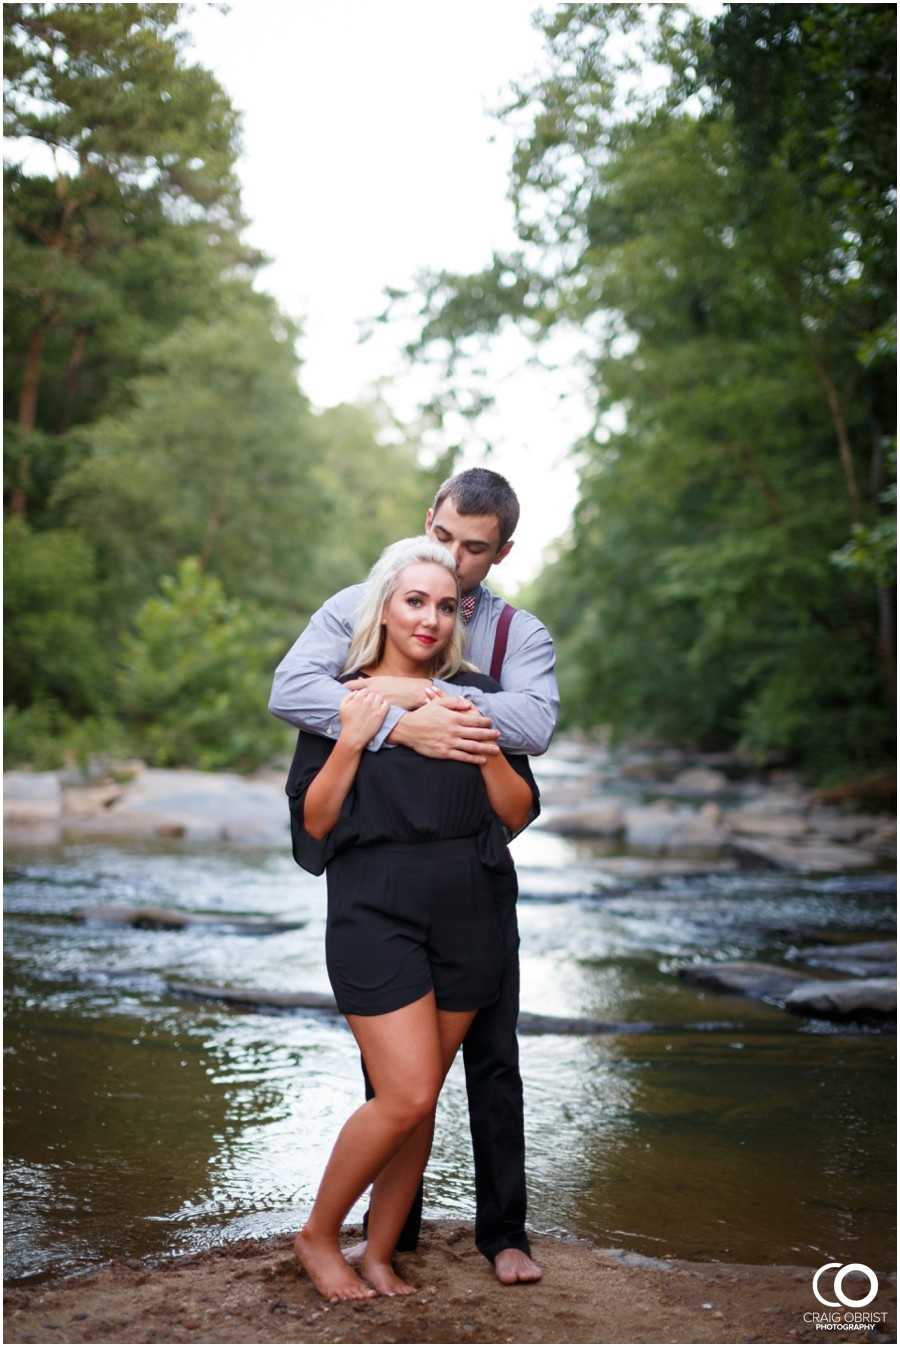 sope-creek-ruins-engagement-portraits-atlanta-georgia_0019.jpg